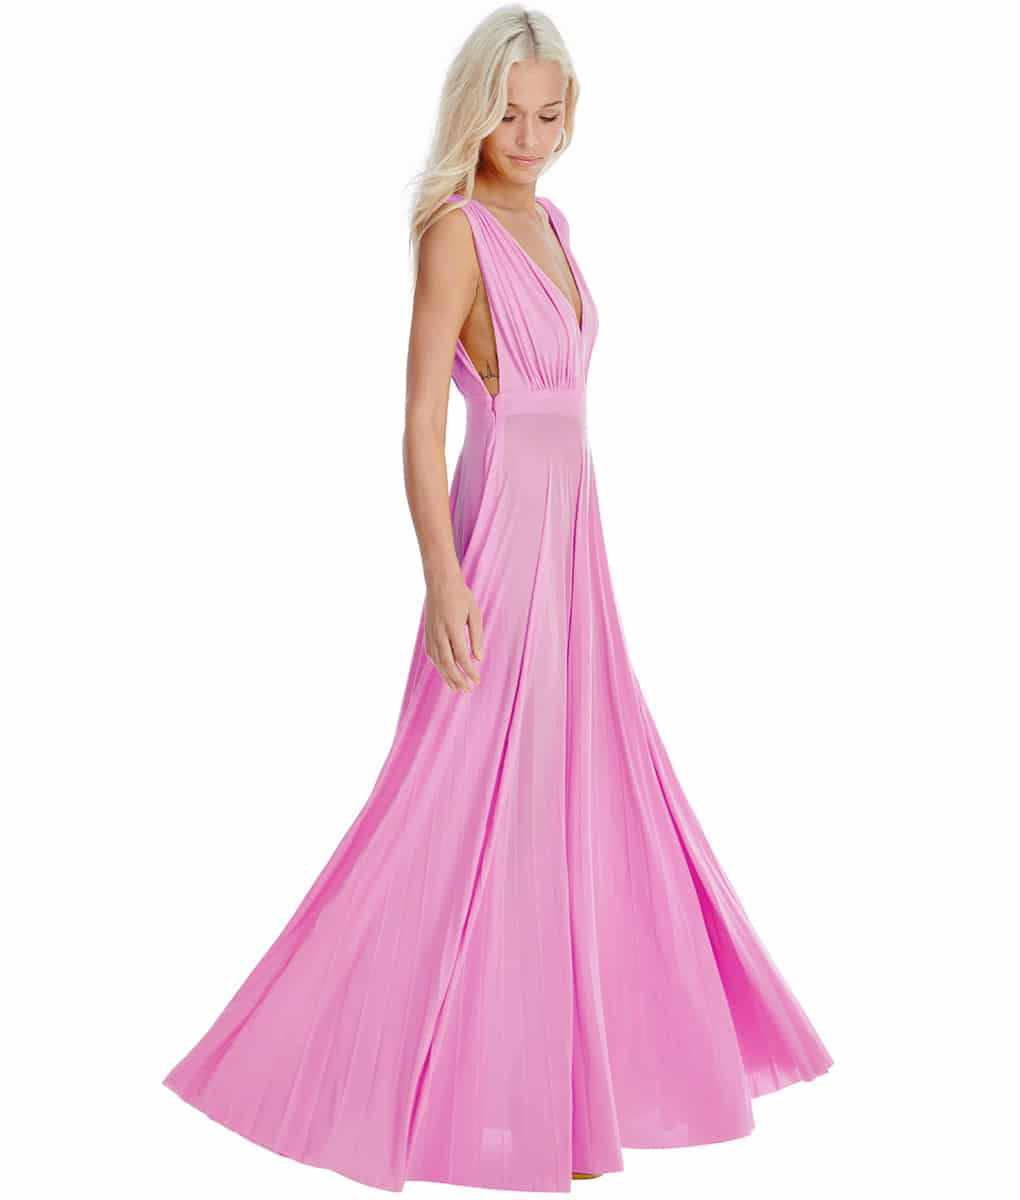 Alila-Pink-plunge-neck-debs-dress-city-goddess